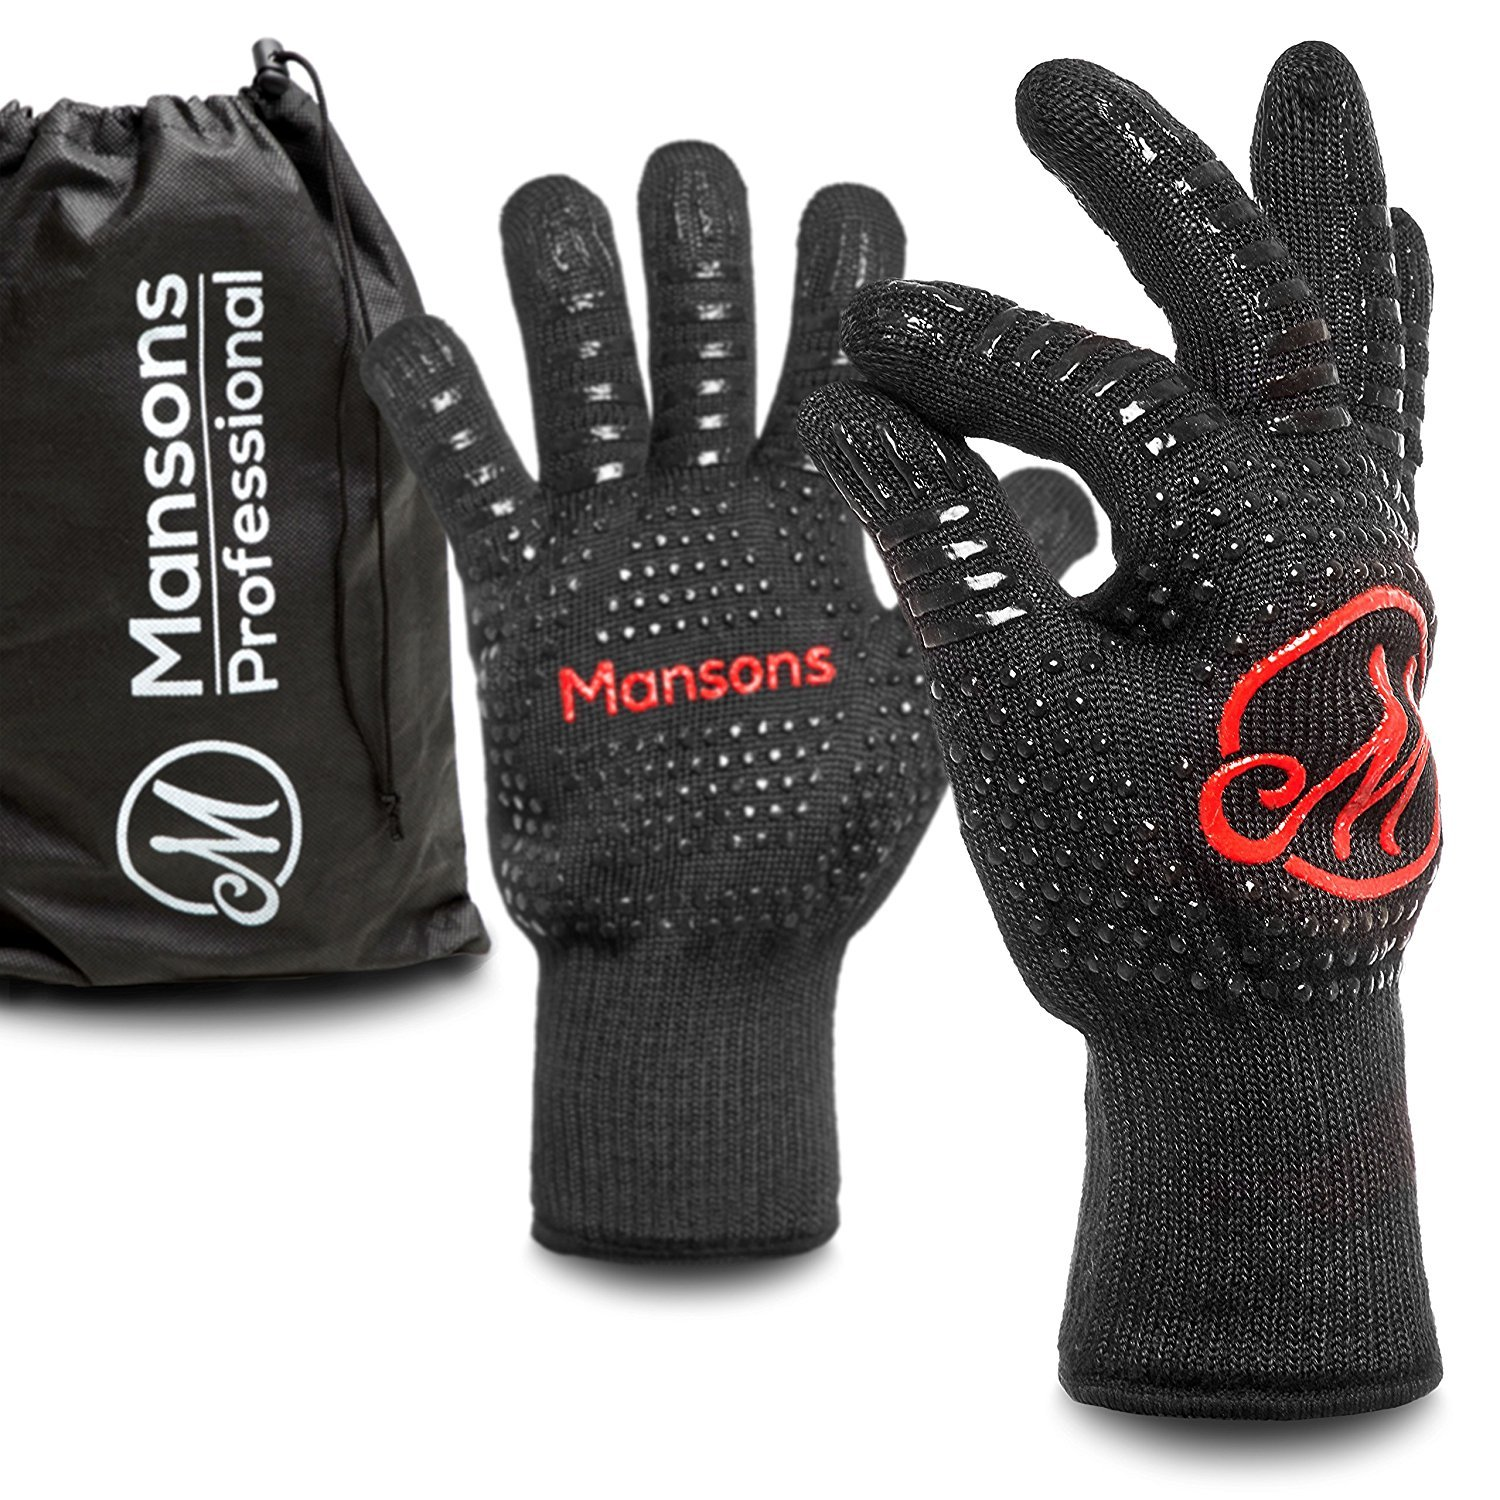 Premium barbecue and oven gloves with storage bag, up to 500 °C, 1 pair up to 500 °C 1 pair MANSONS